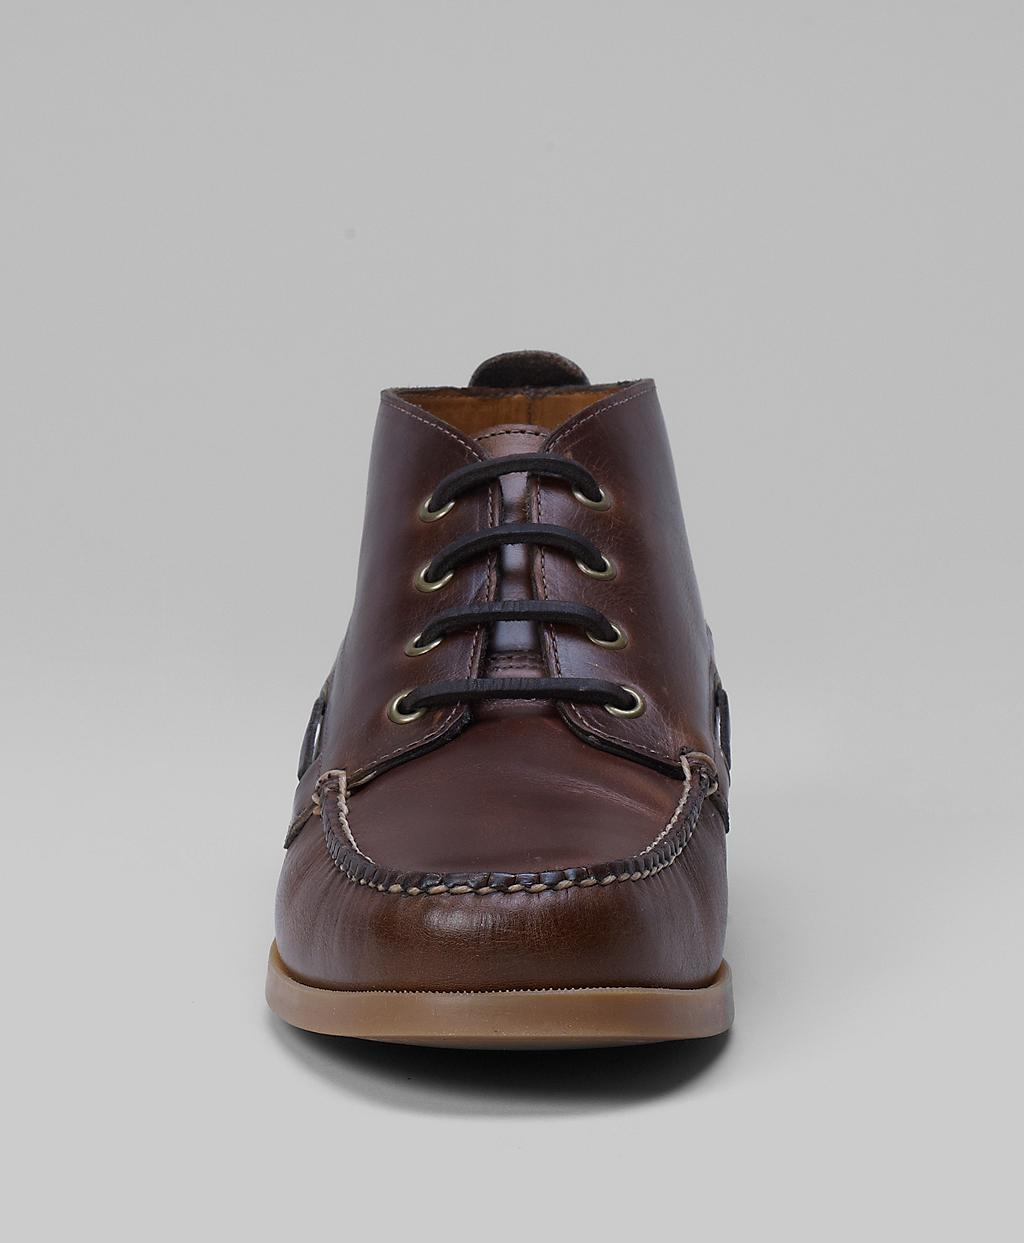 22b4b257b29 Lyst - Brooks Brothers Chukka Boat Boots in Brown for Men